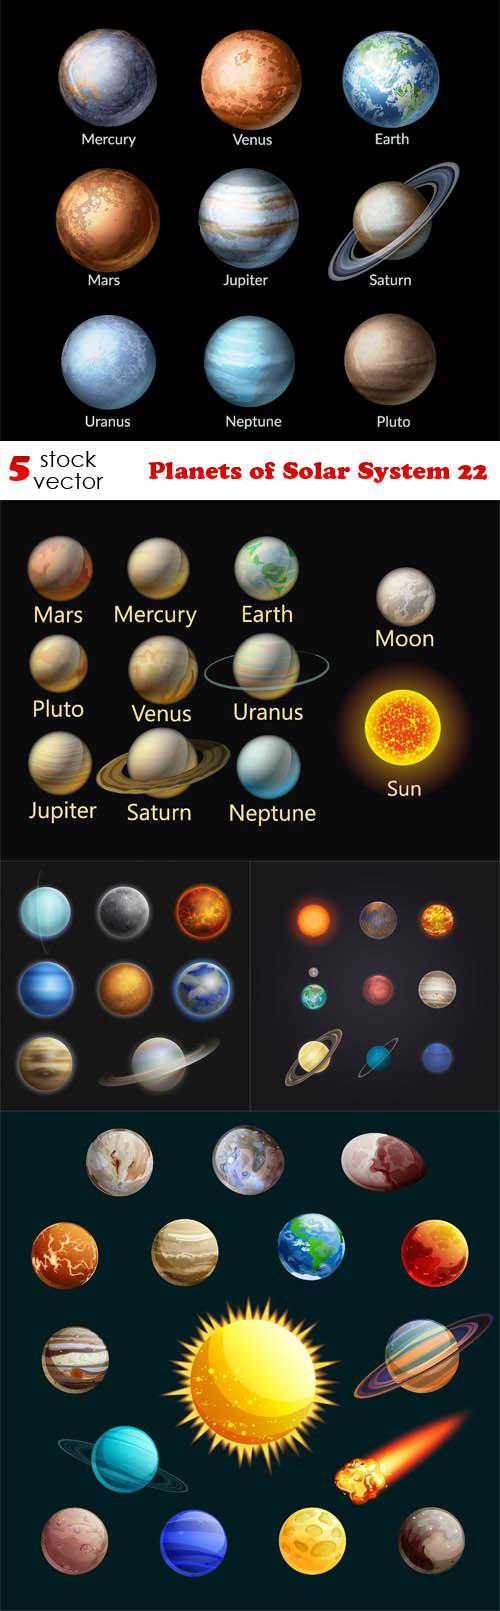 Planets of Solar System 22